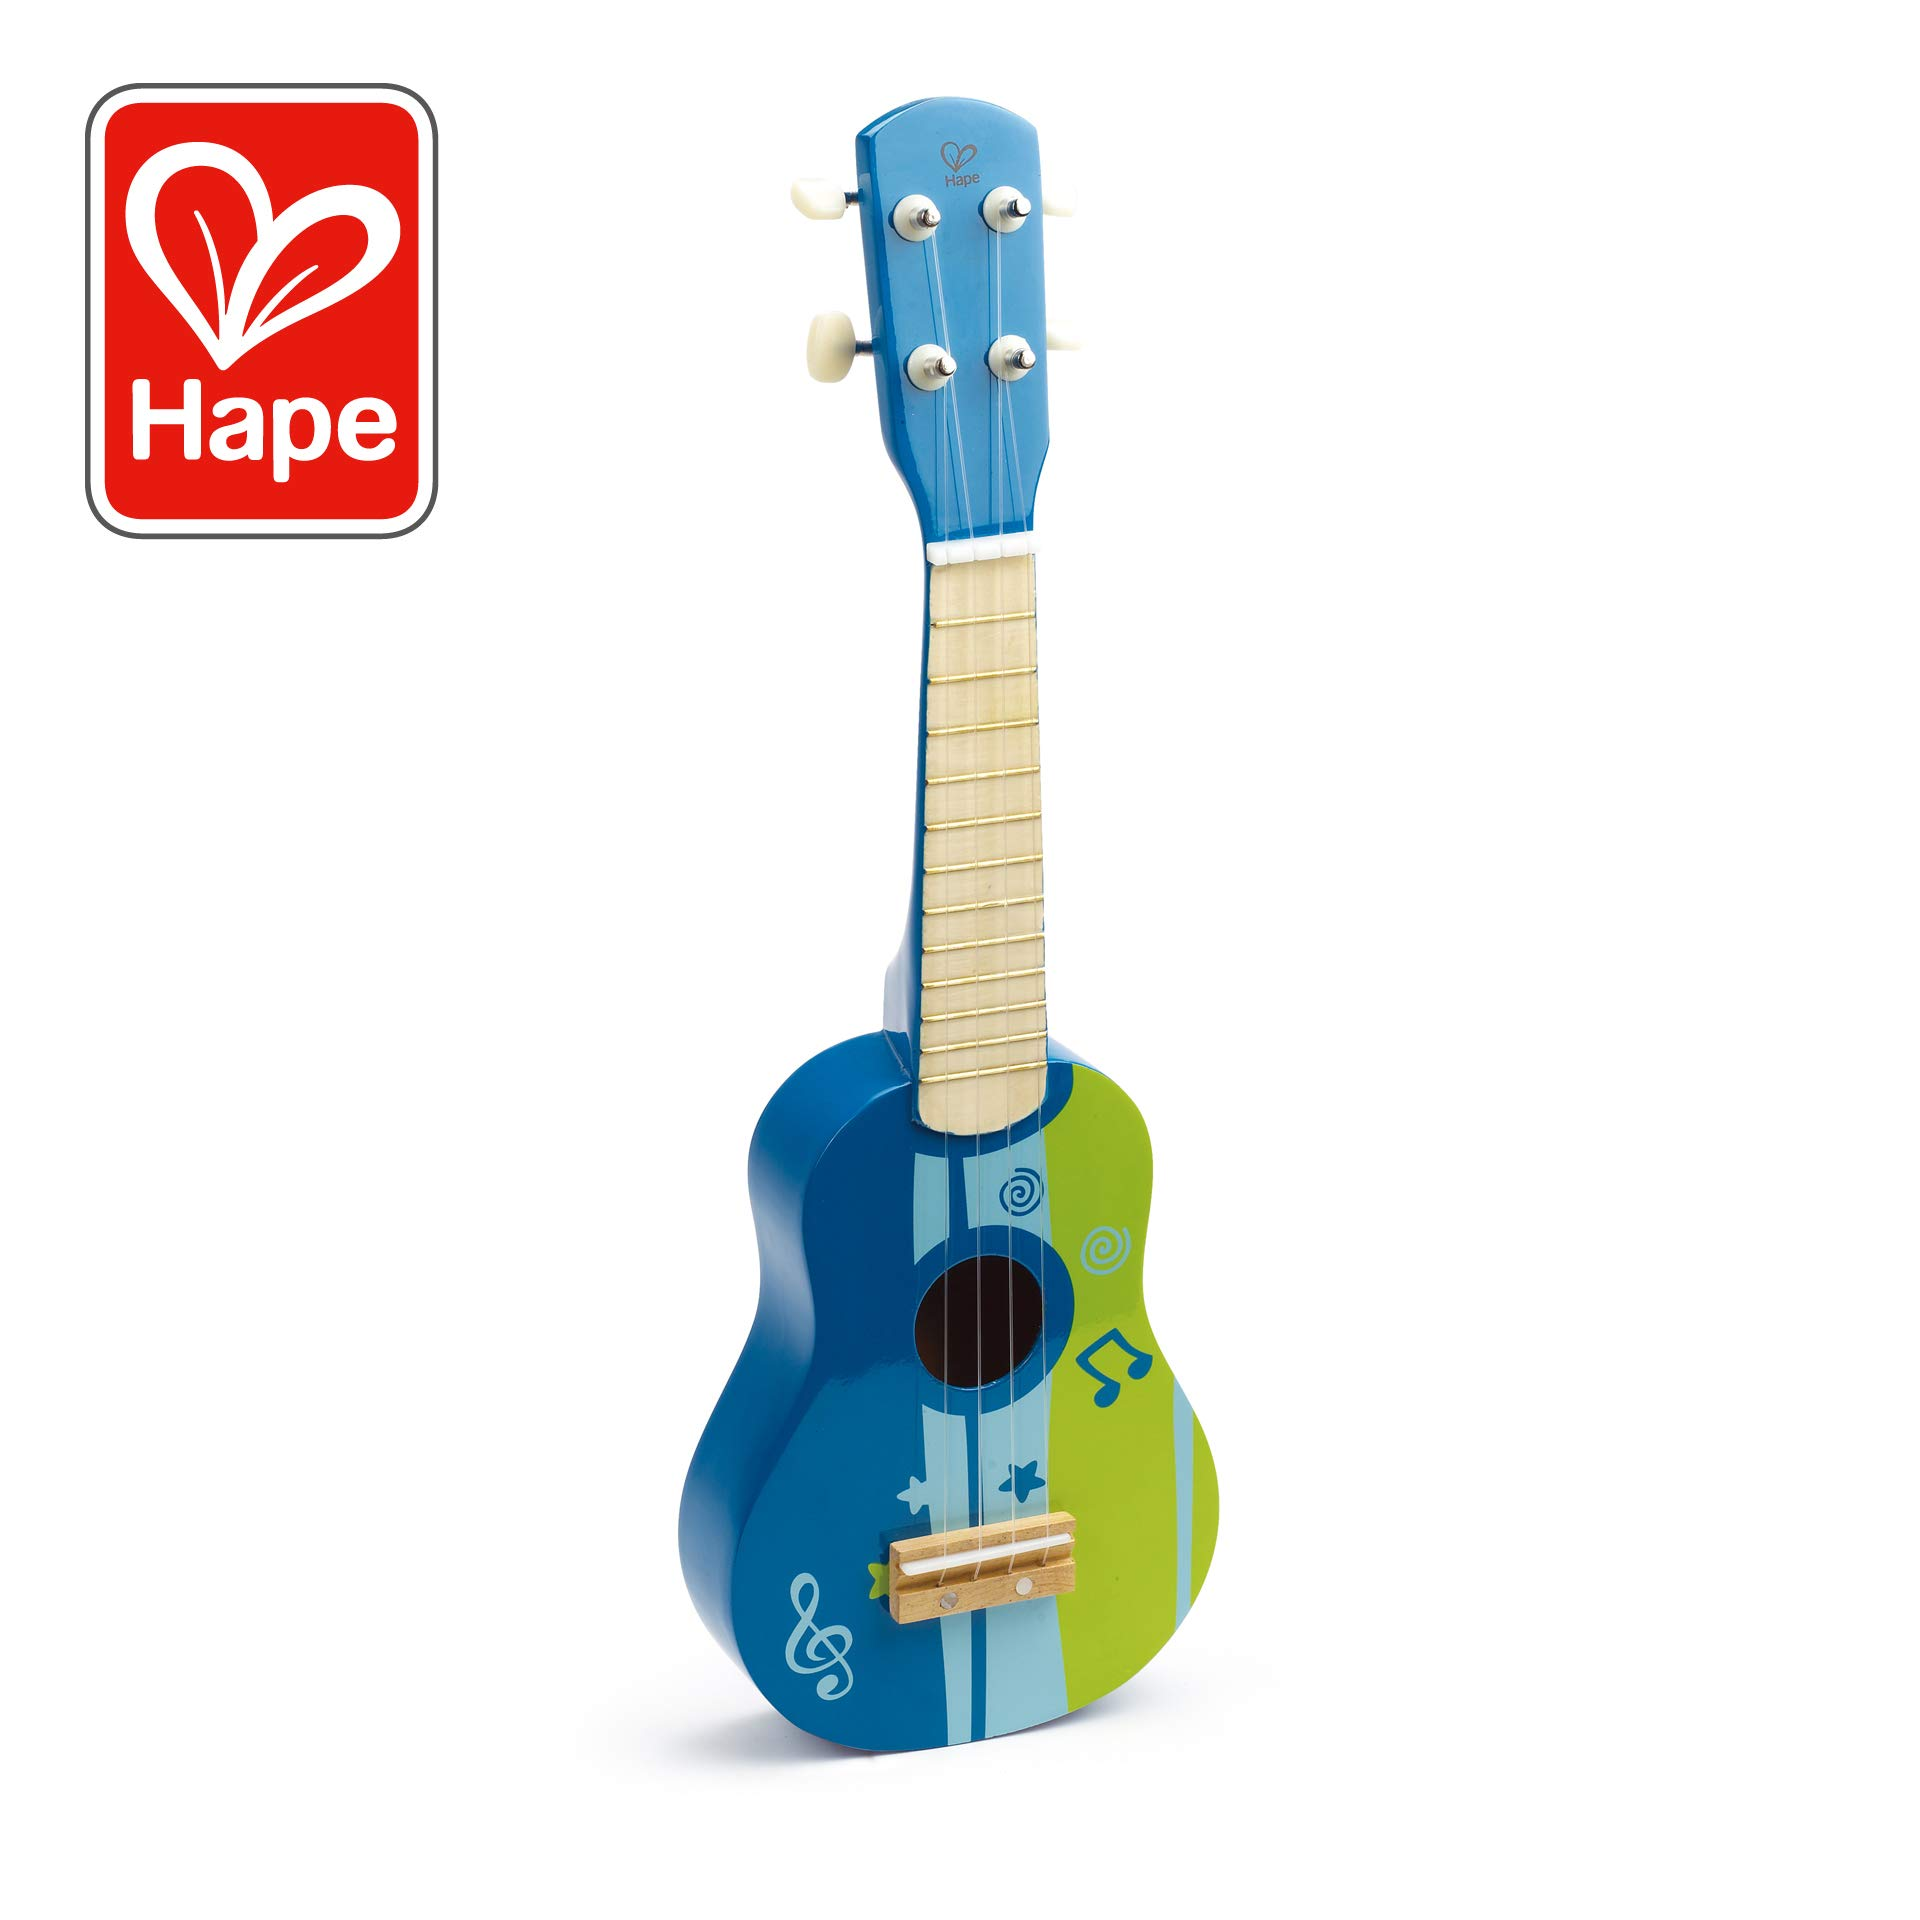 Hape Kid's Wooden Toy Ukulele in Blue by Hape